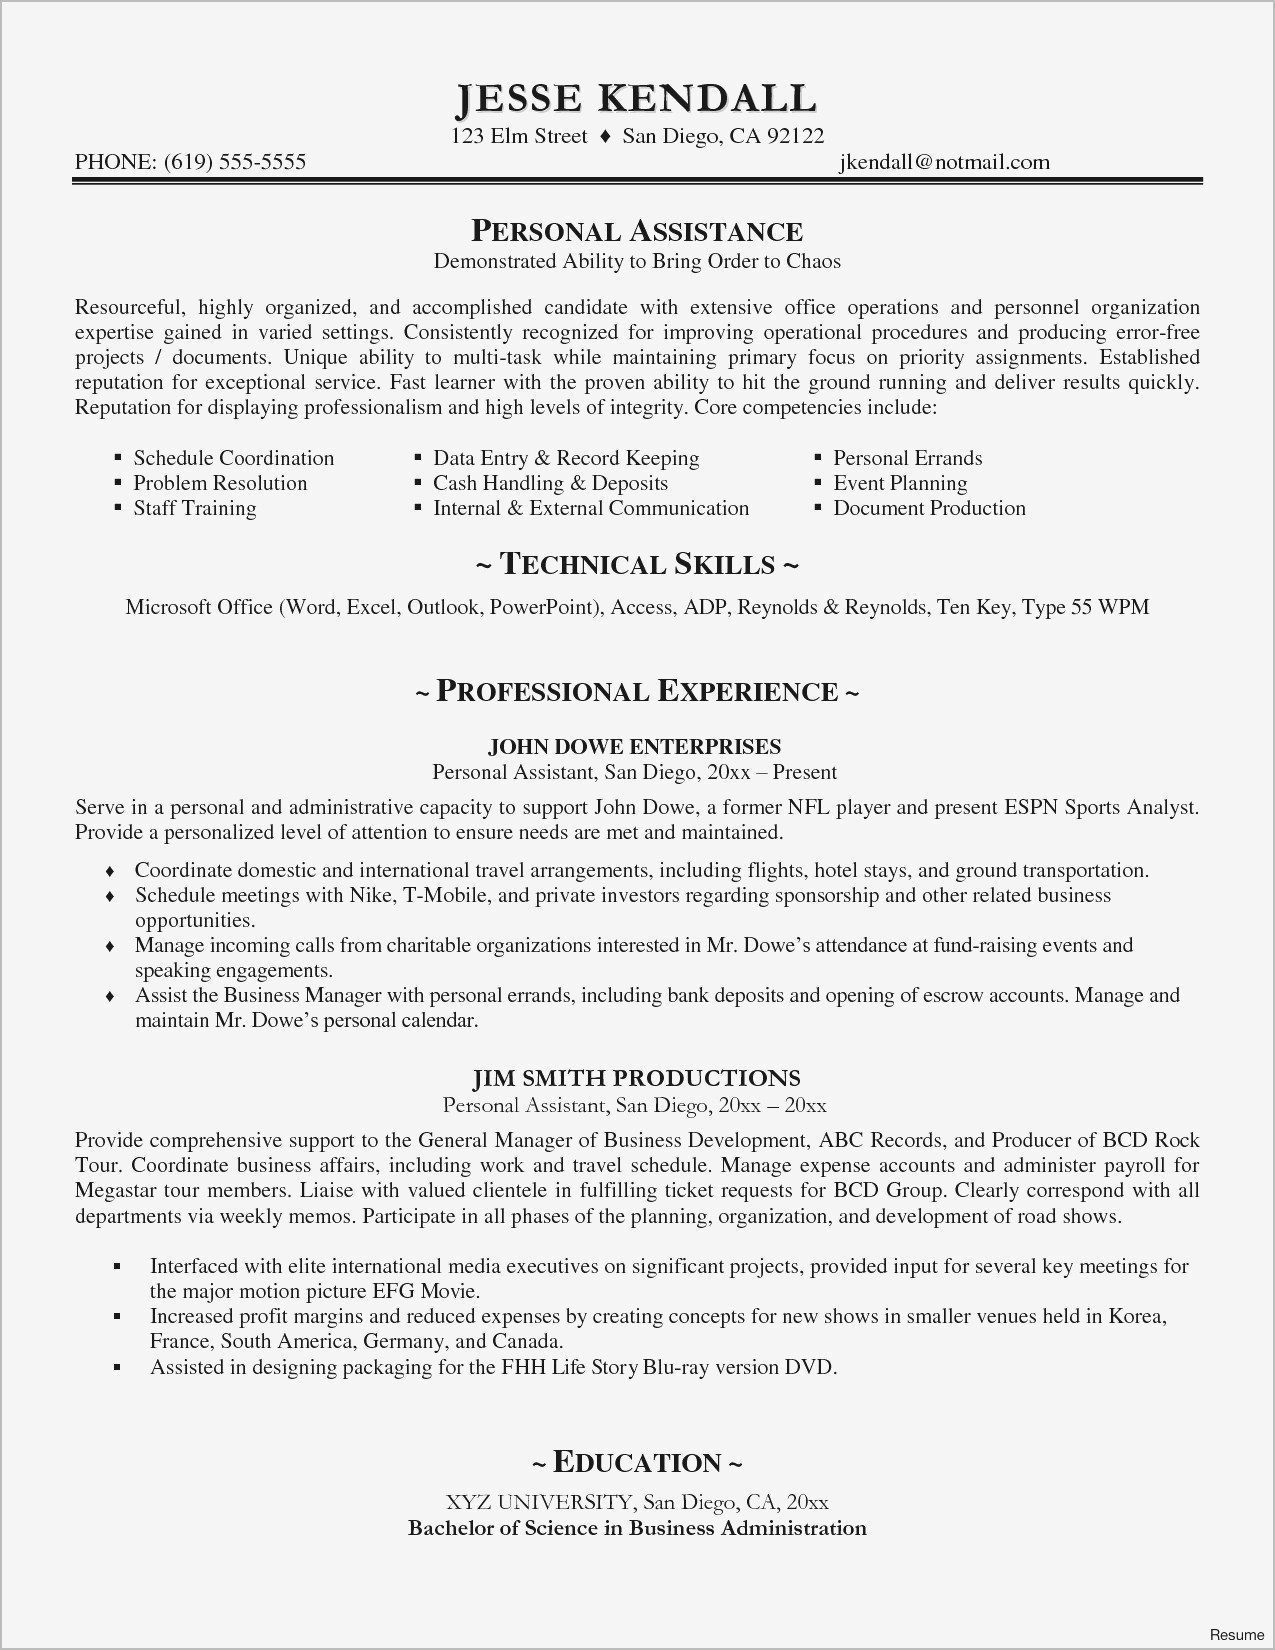 Best Way to Make A Resume - Unique Best Way to Make A Resume